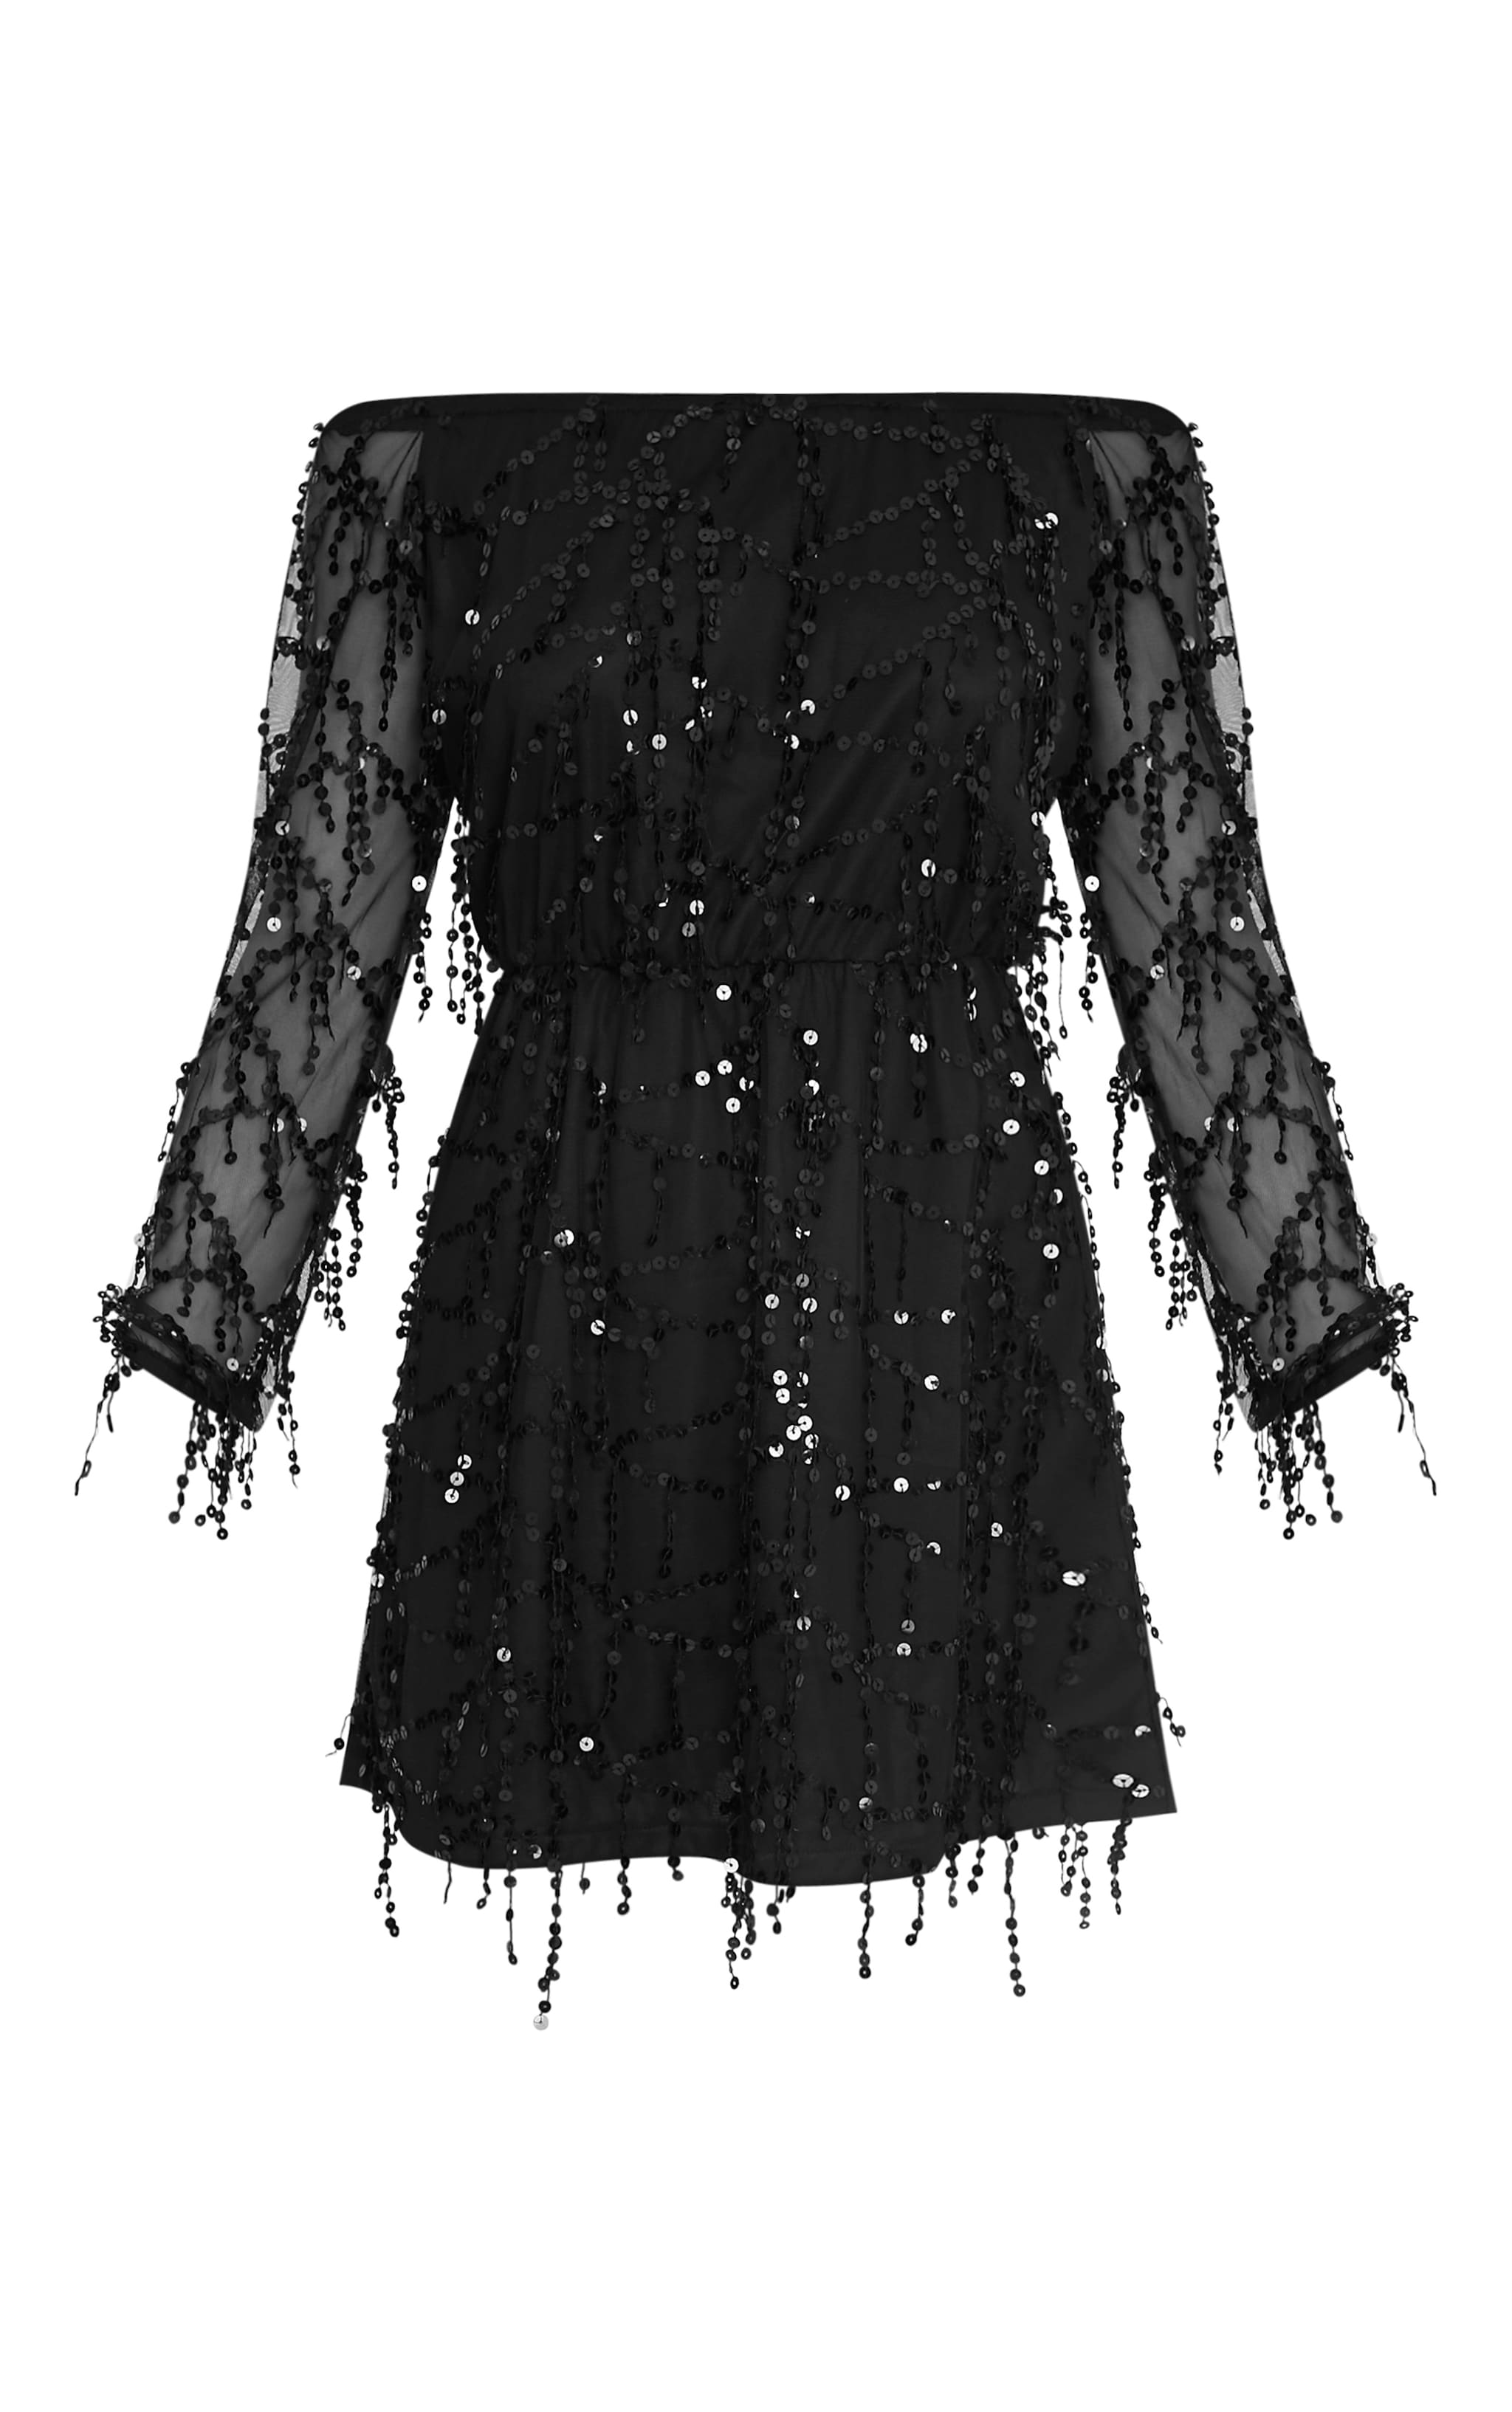 Suki Black Sequin Detail Bardot Dress 2